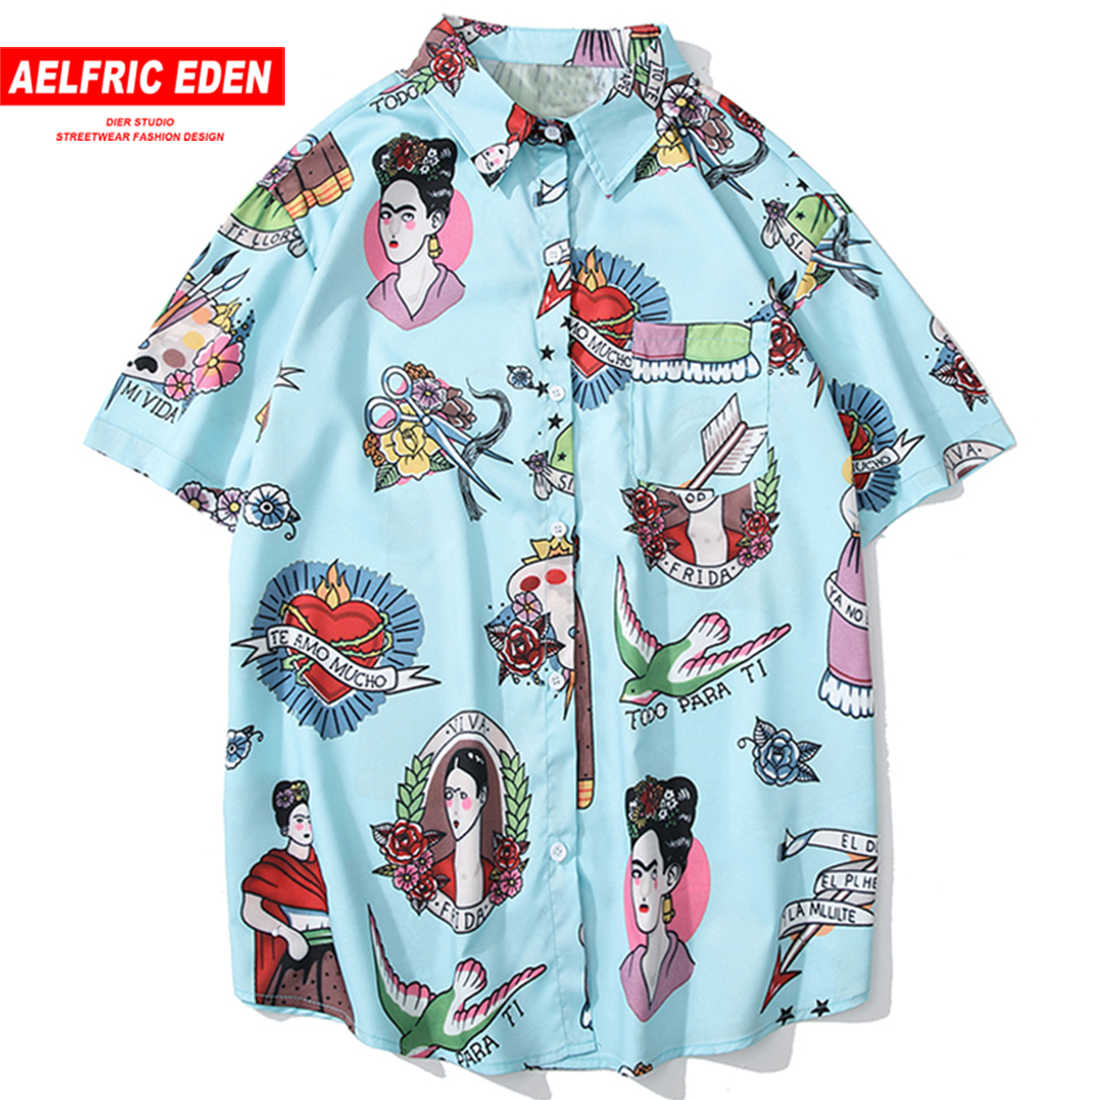 Aelfric Eden Creative Print Slim Fit Casual Shirts Men Women Summer Harajuku Short Sleeve Hawaiian Shirt 2019 Hip Hop Streetwear